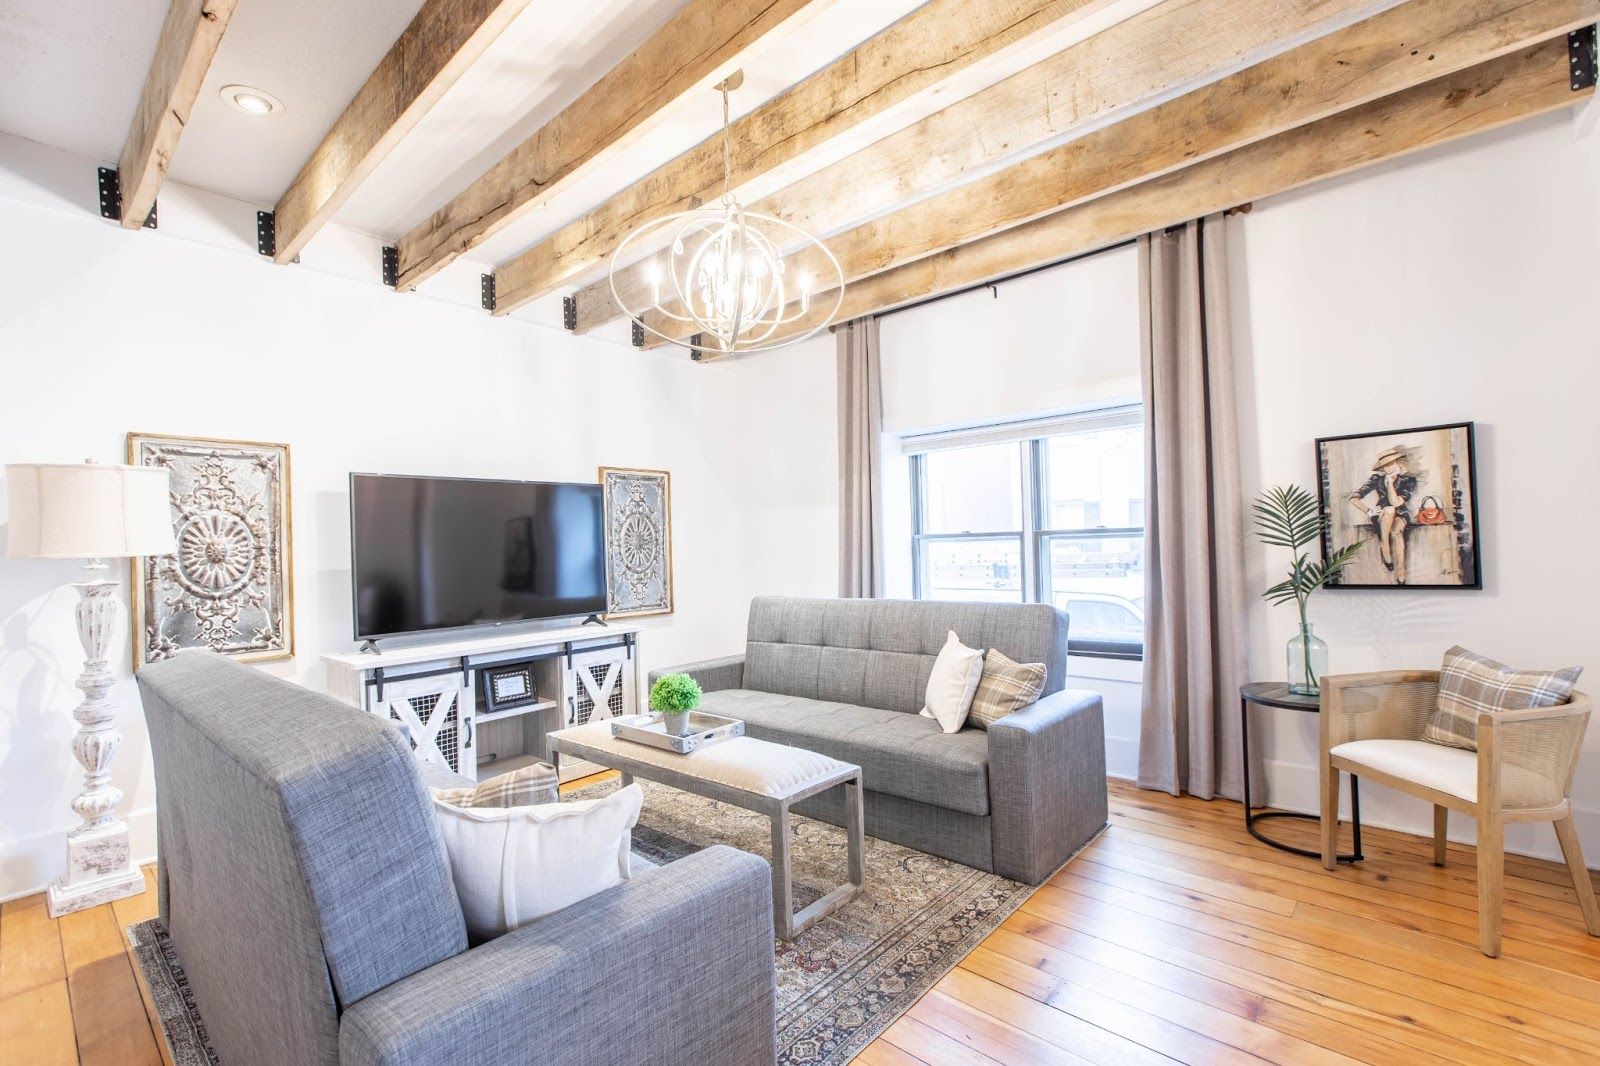 How To Lighten Dark Stained Wood Beams